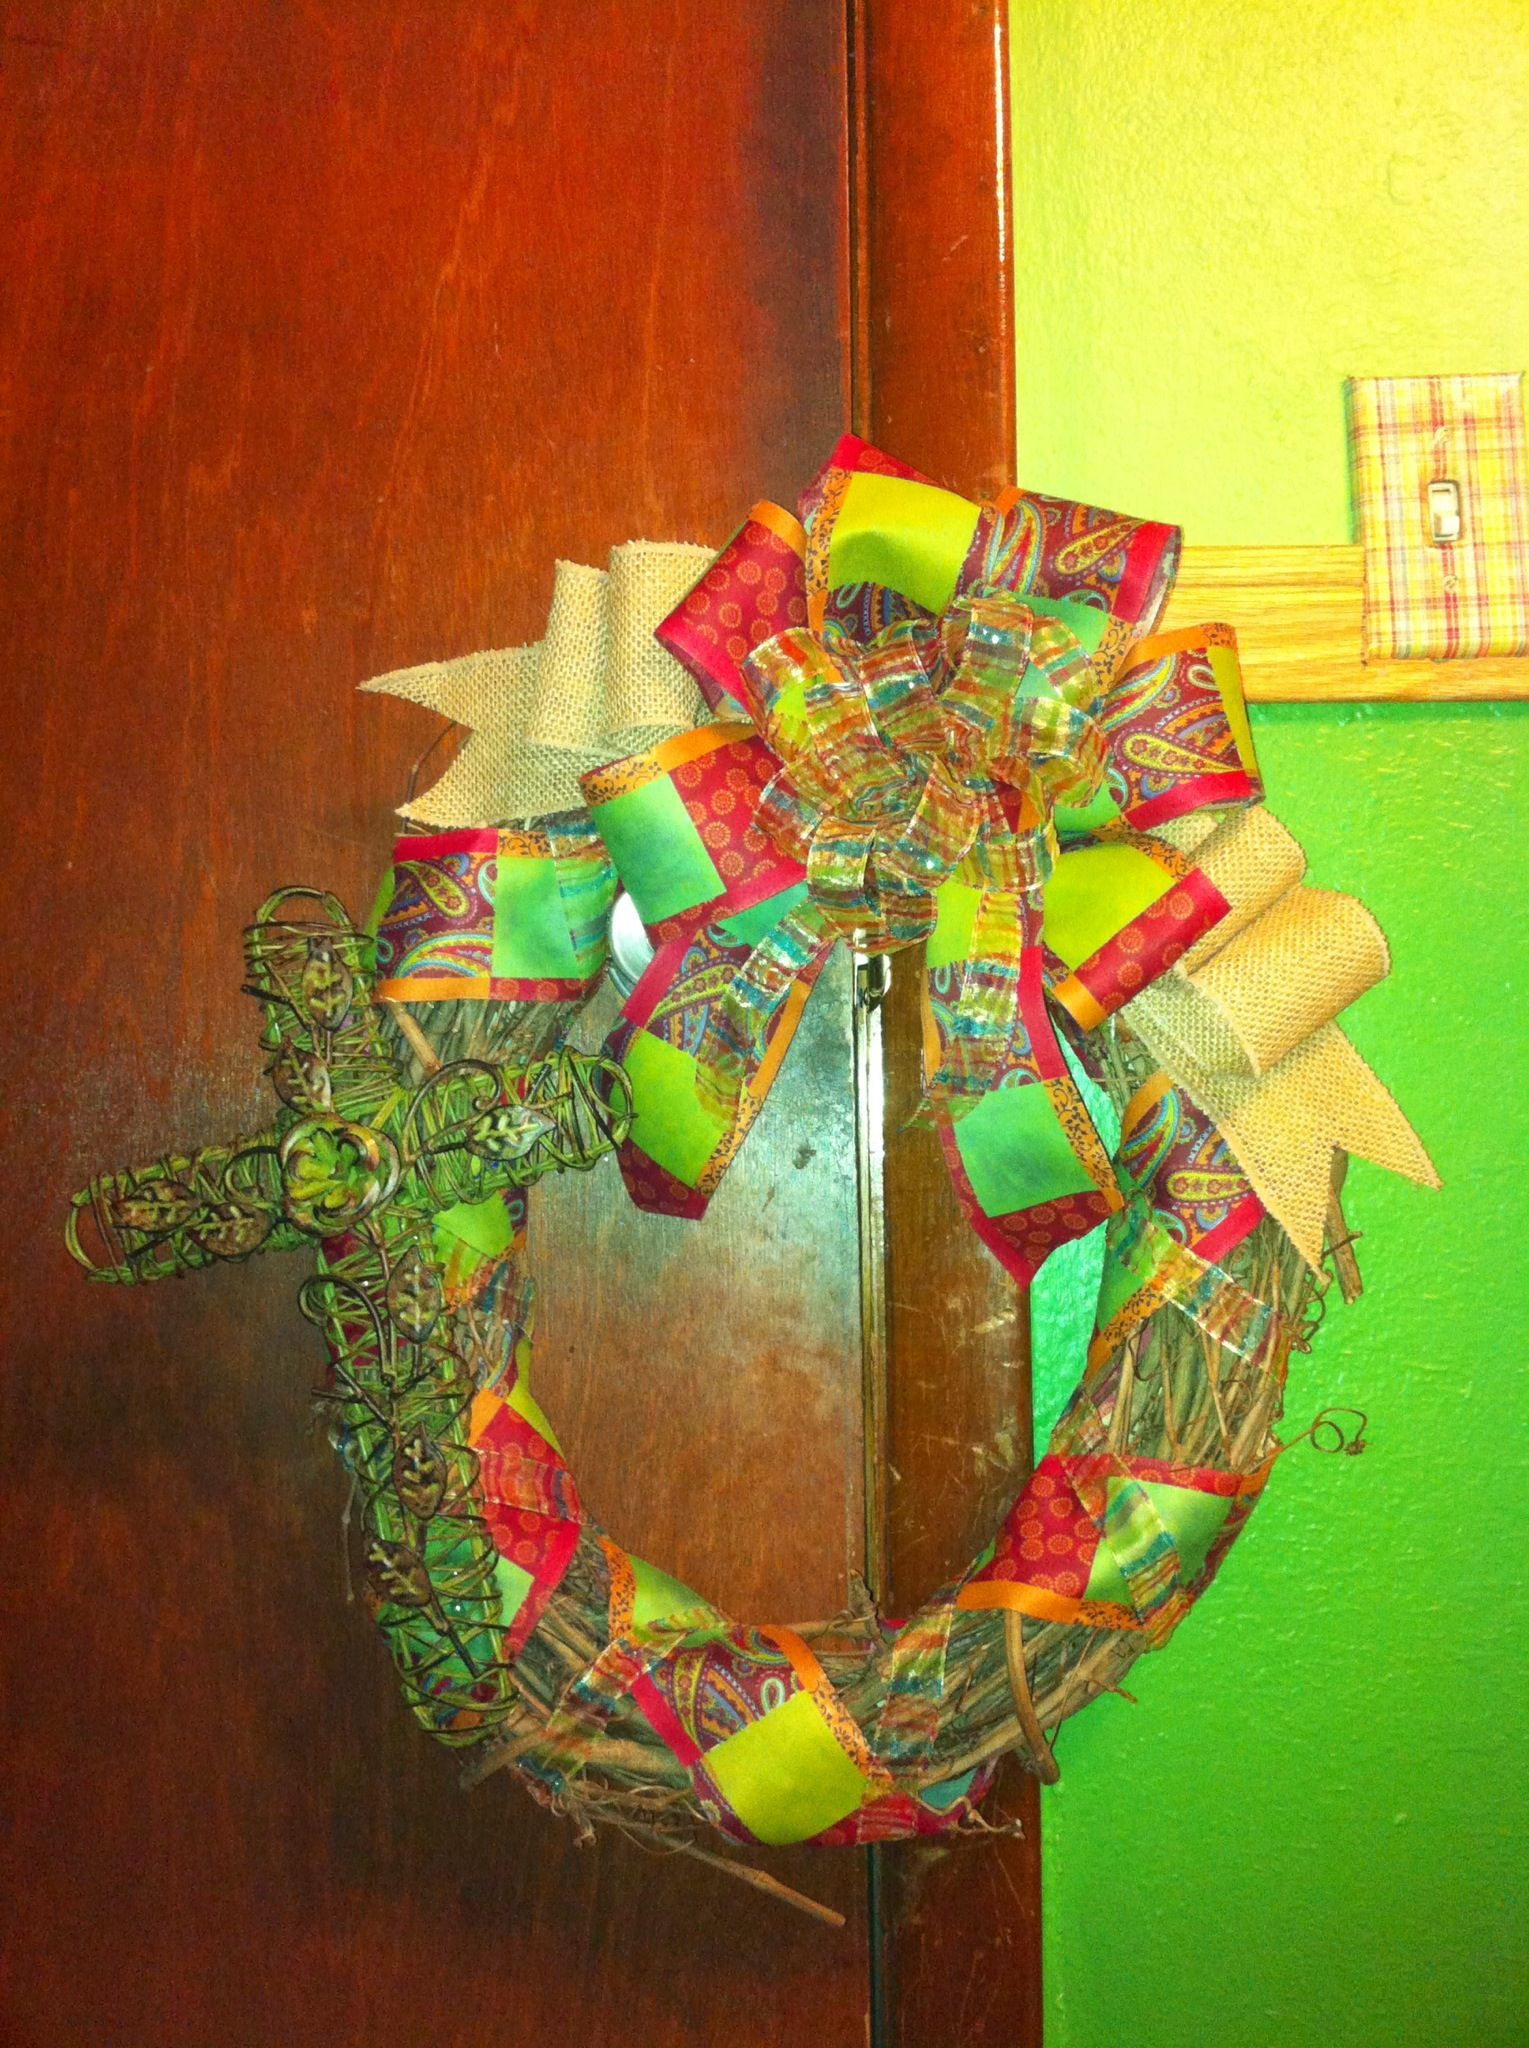 Oval grapevine metal cross wreath adorned with multicolored paisley and burlap bow. All items used purchased at Hobby Lobby. Check out my Facebook page! Search for Crafty Queen Creations!